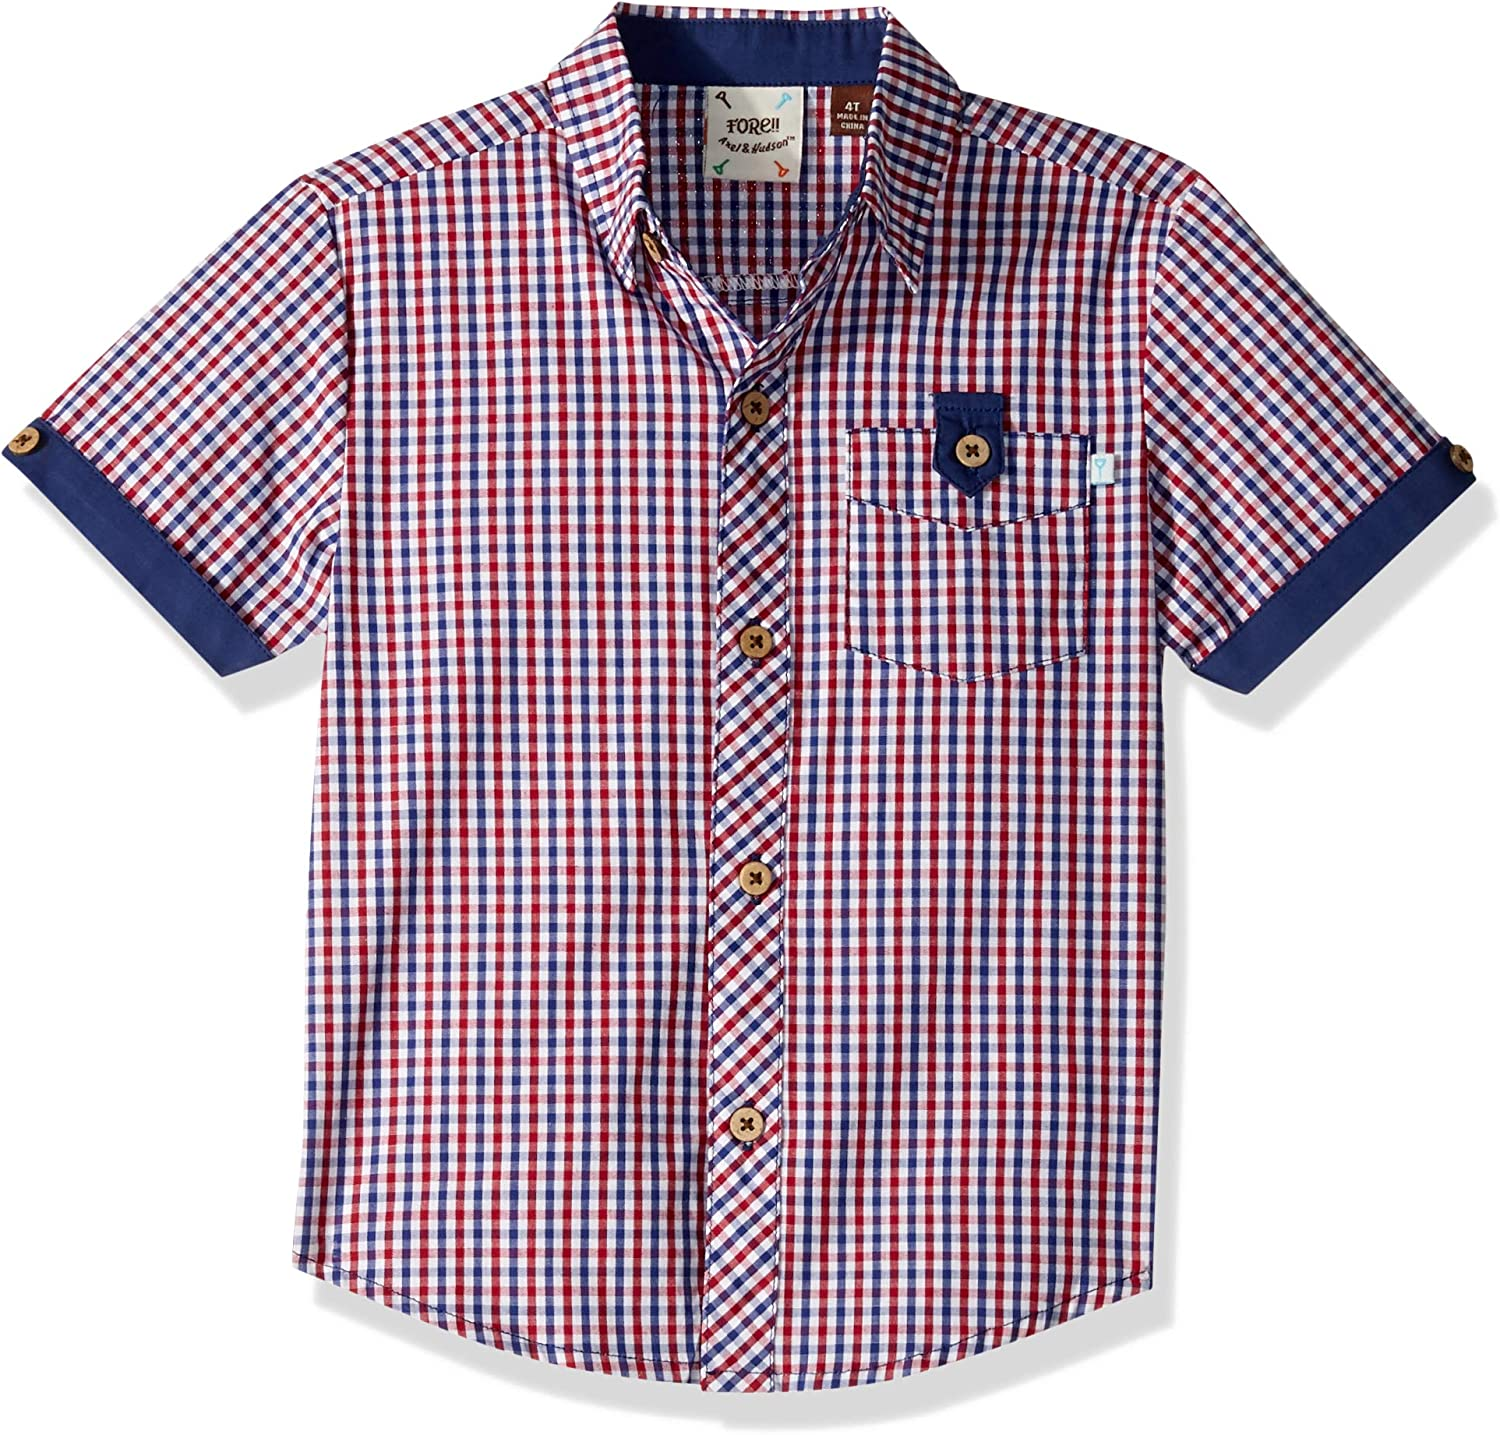 low-pricing NEW before selling Fore Axel Hudson Boys' Red Checked 4T Shirt